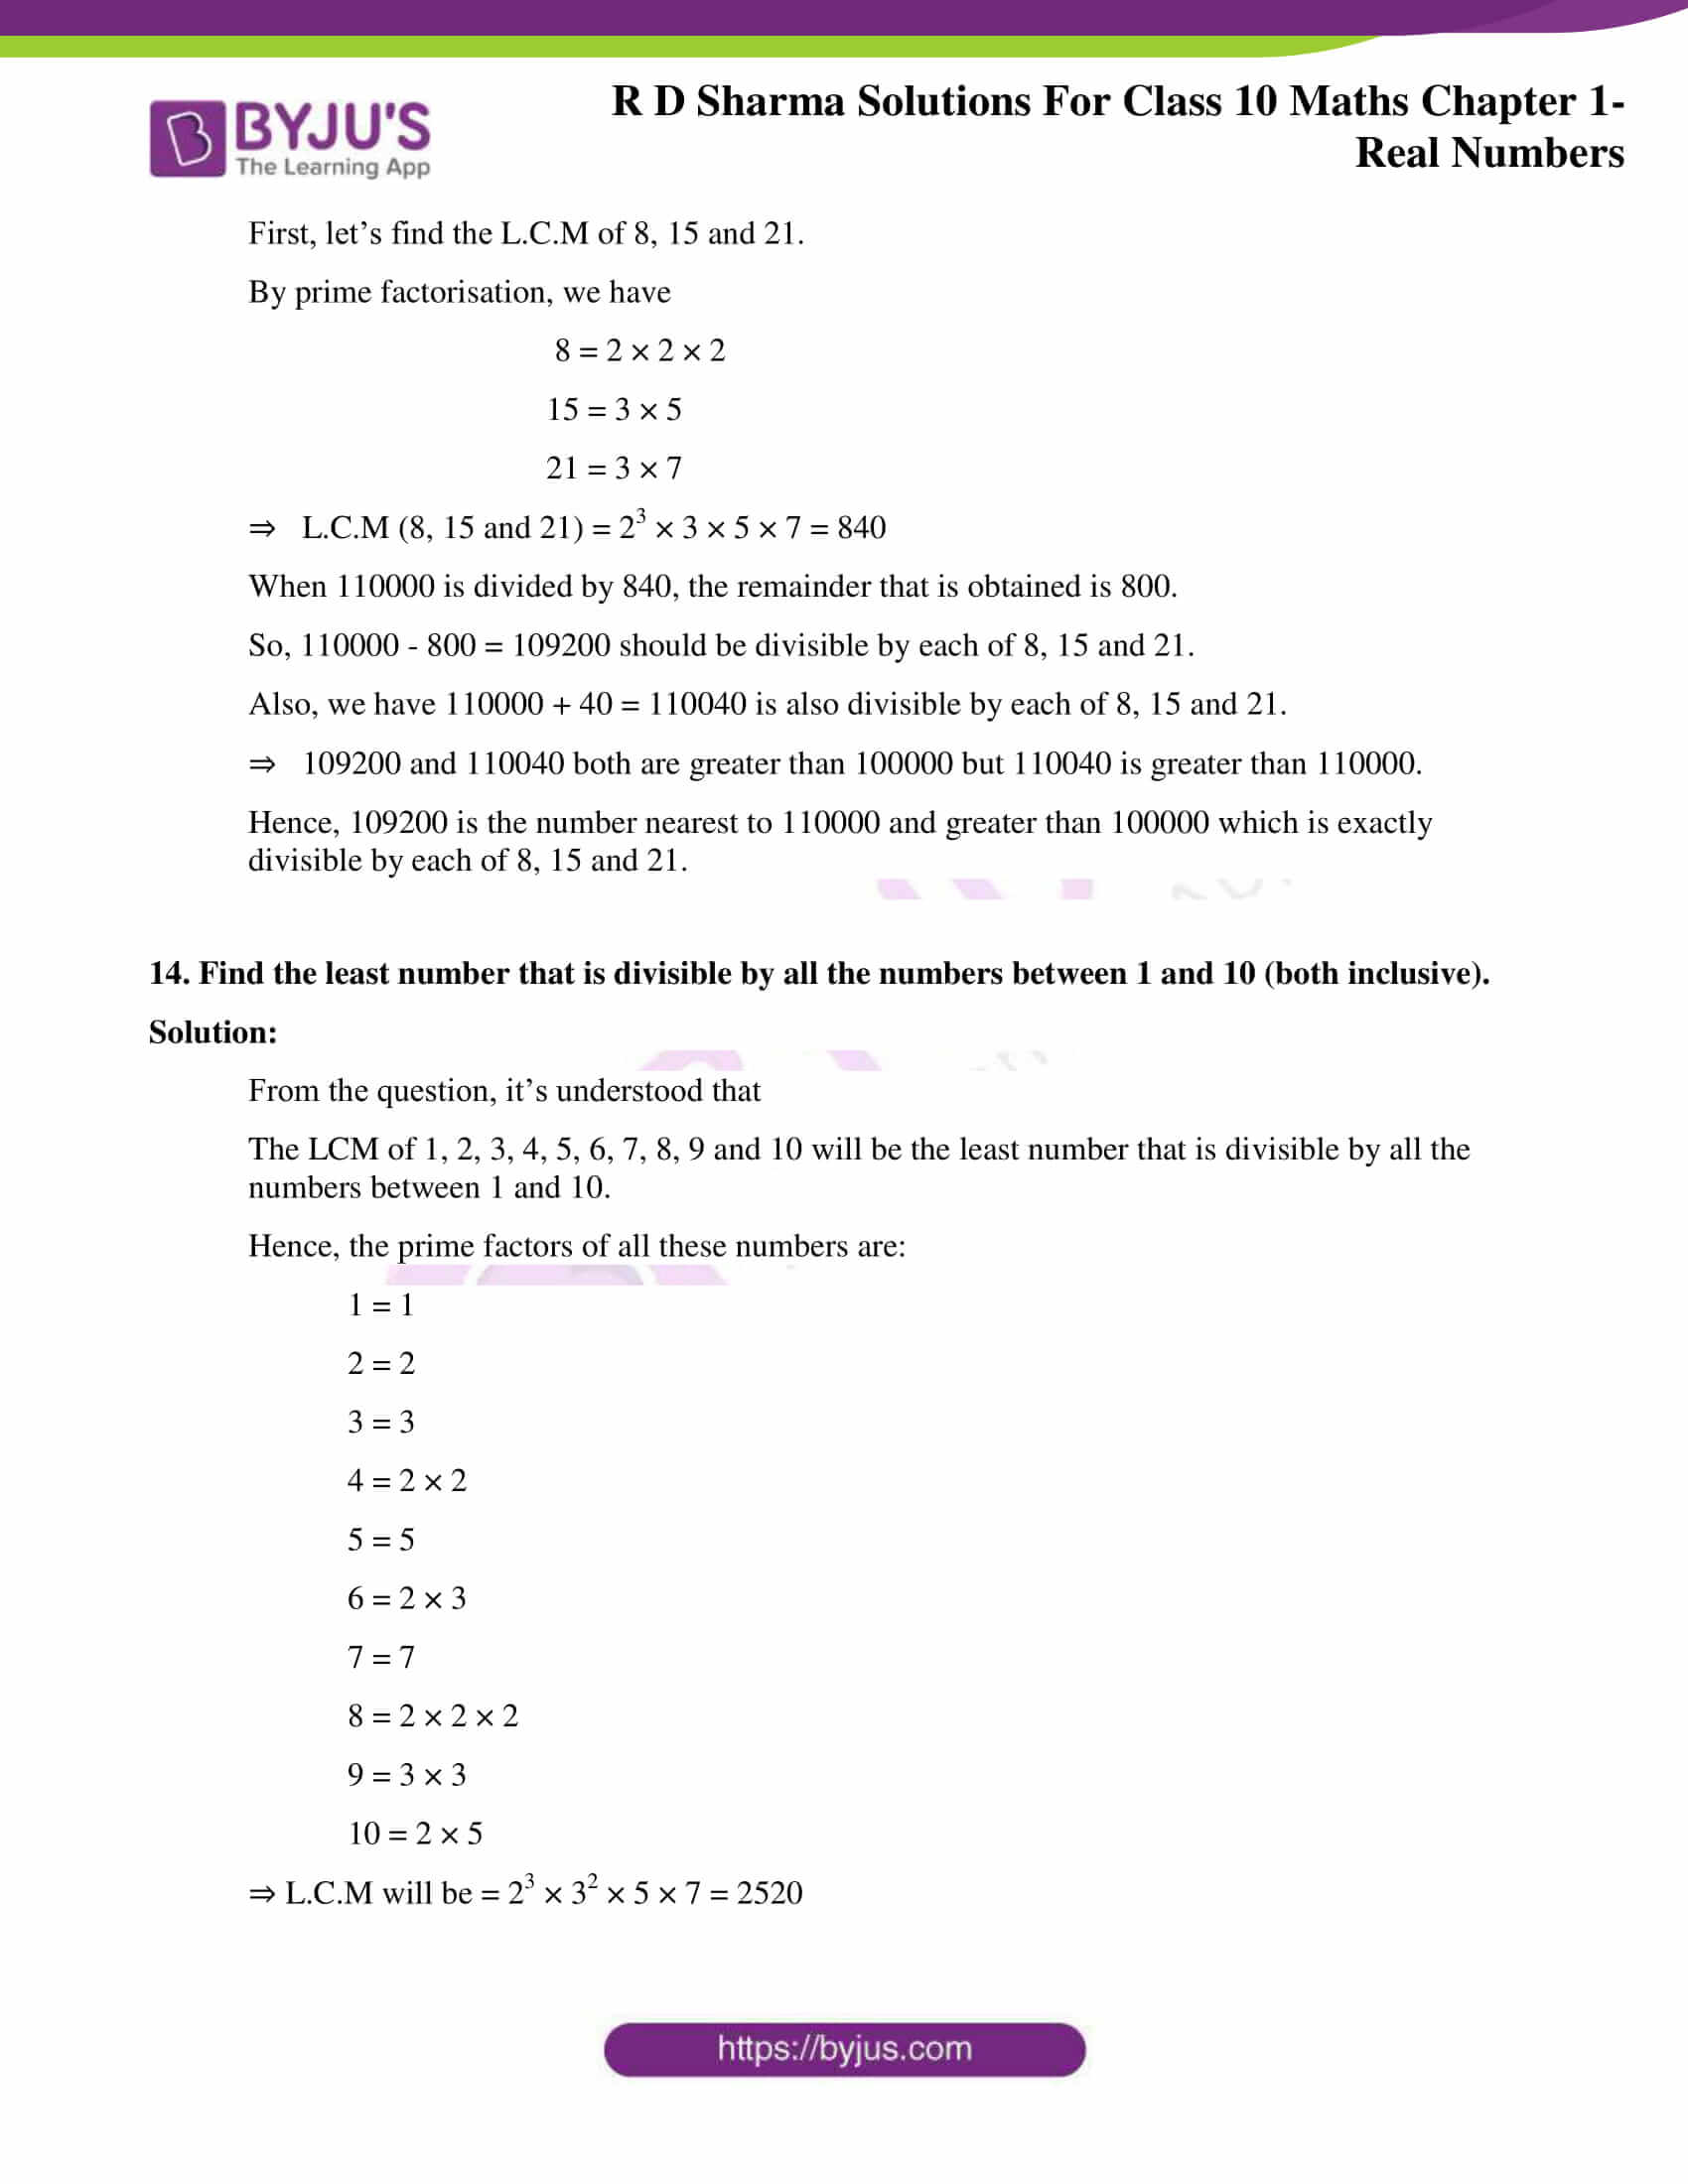 rd sharma class 10 chapter 1 real numbers solutions exercise 4 09